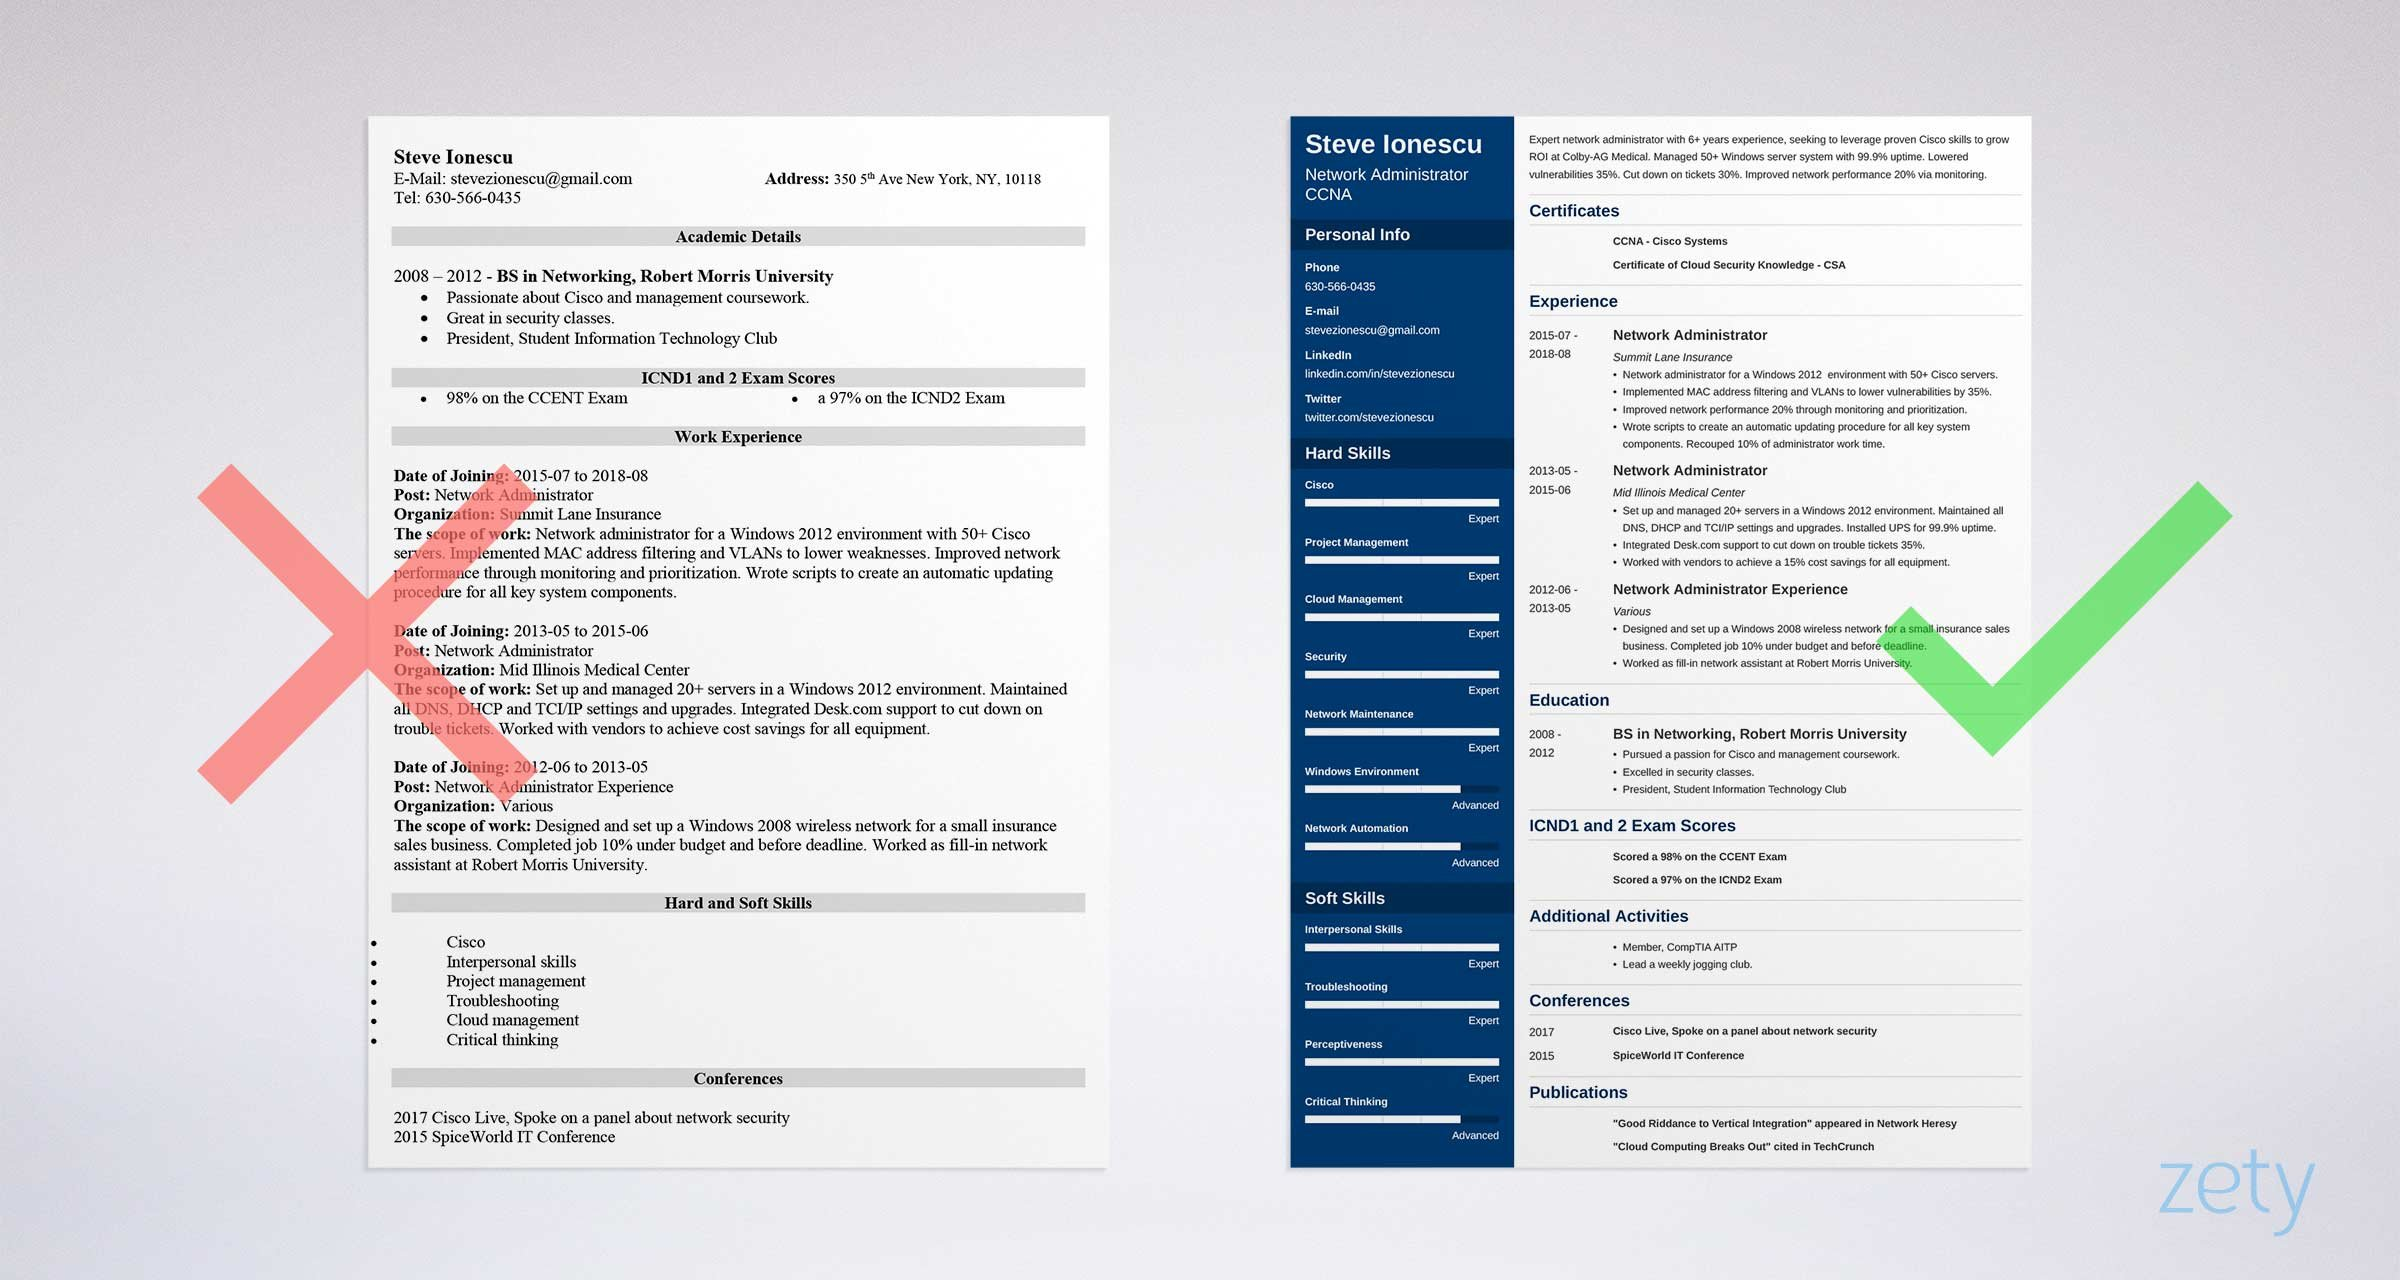 Network Administrator Resume Example   See +20 Resume Templates And Create  Your Resume Here